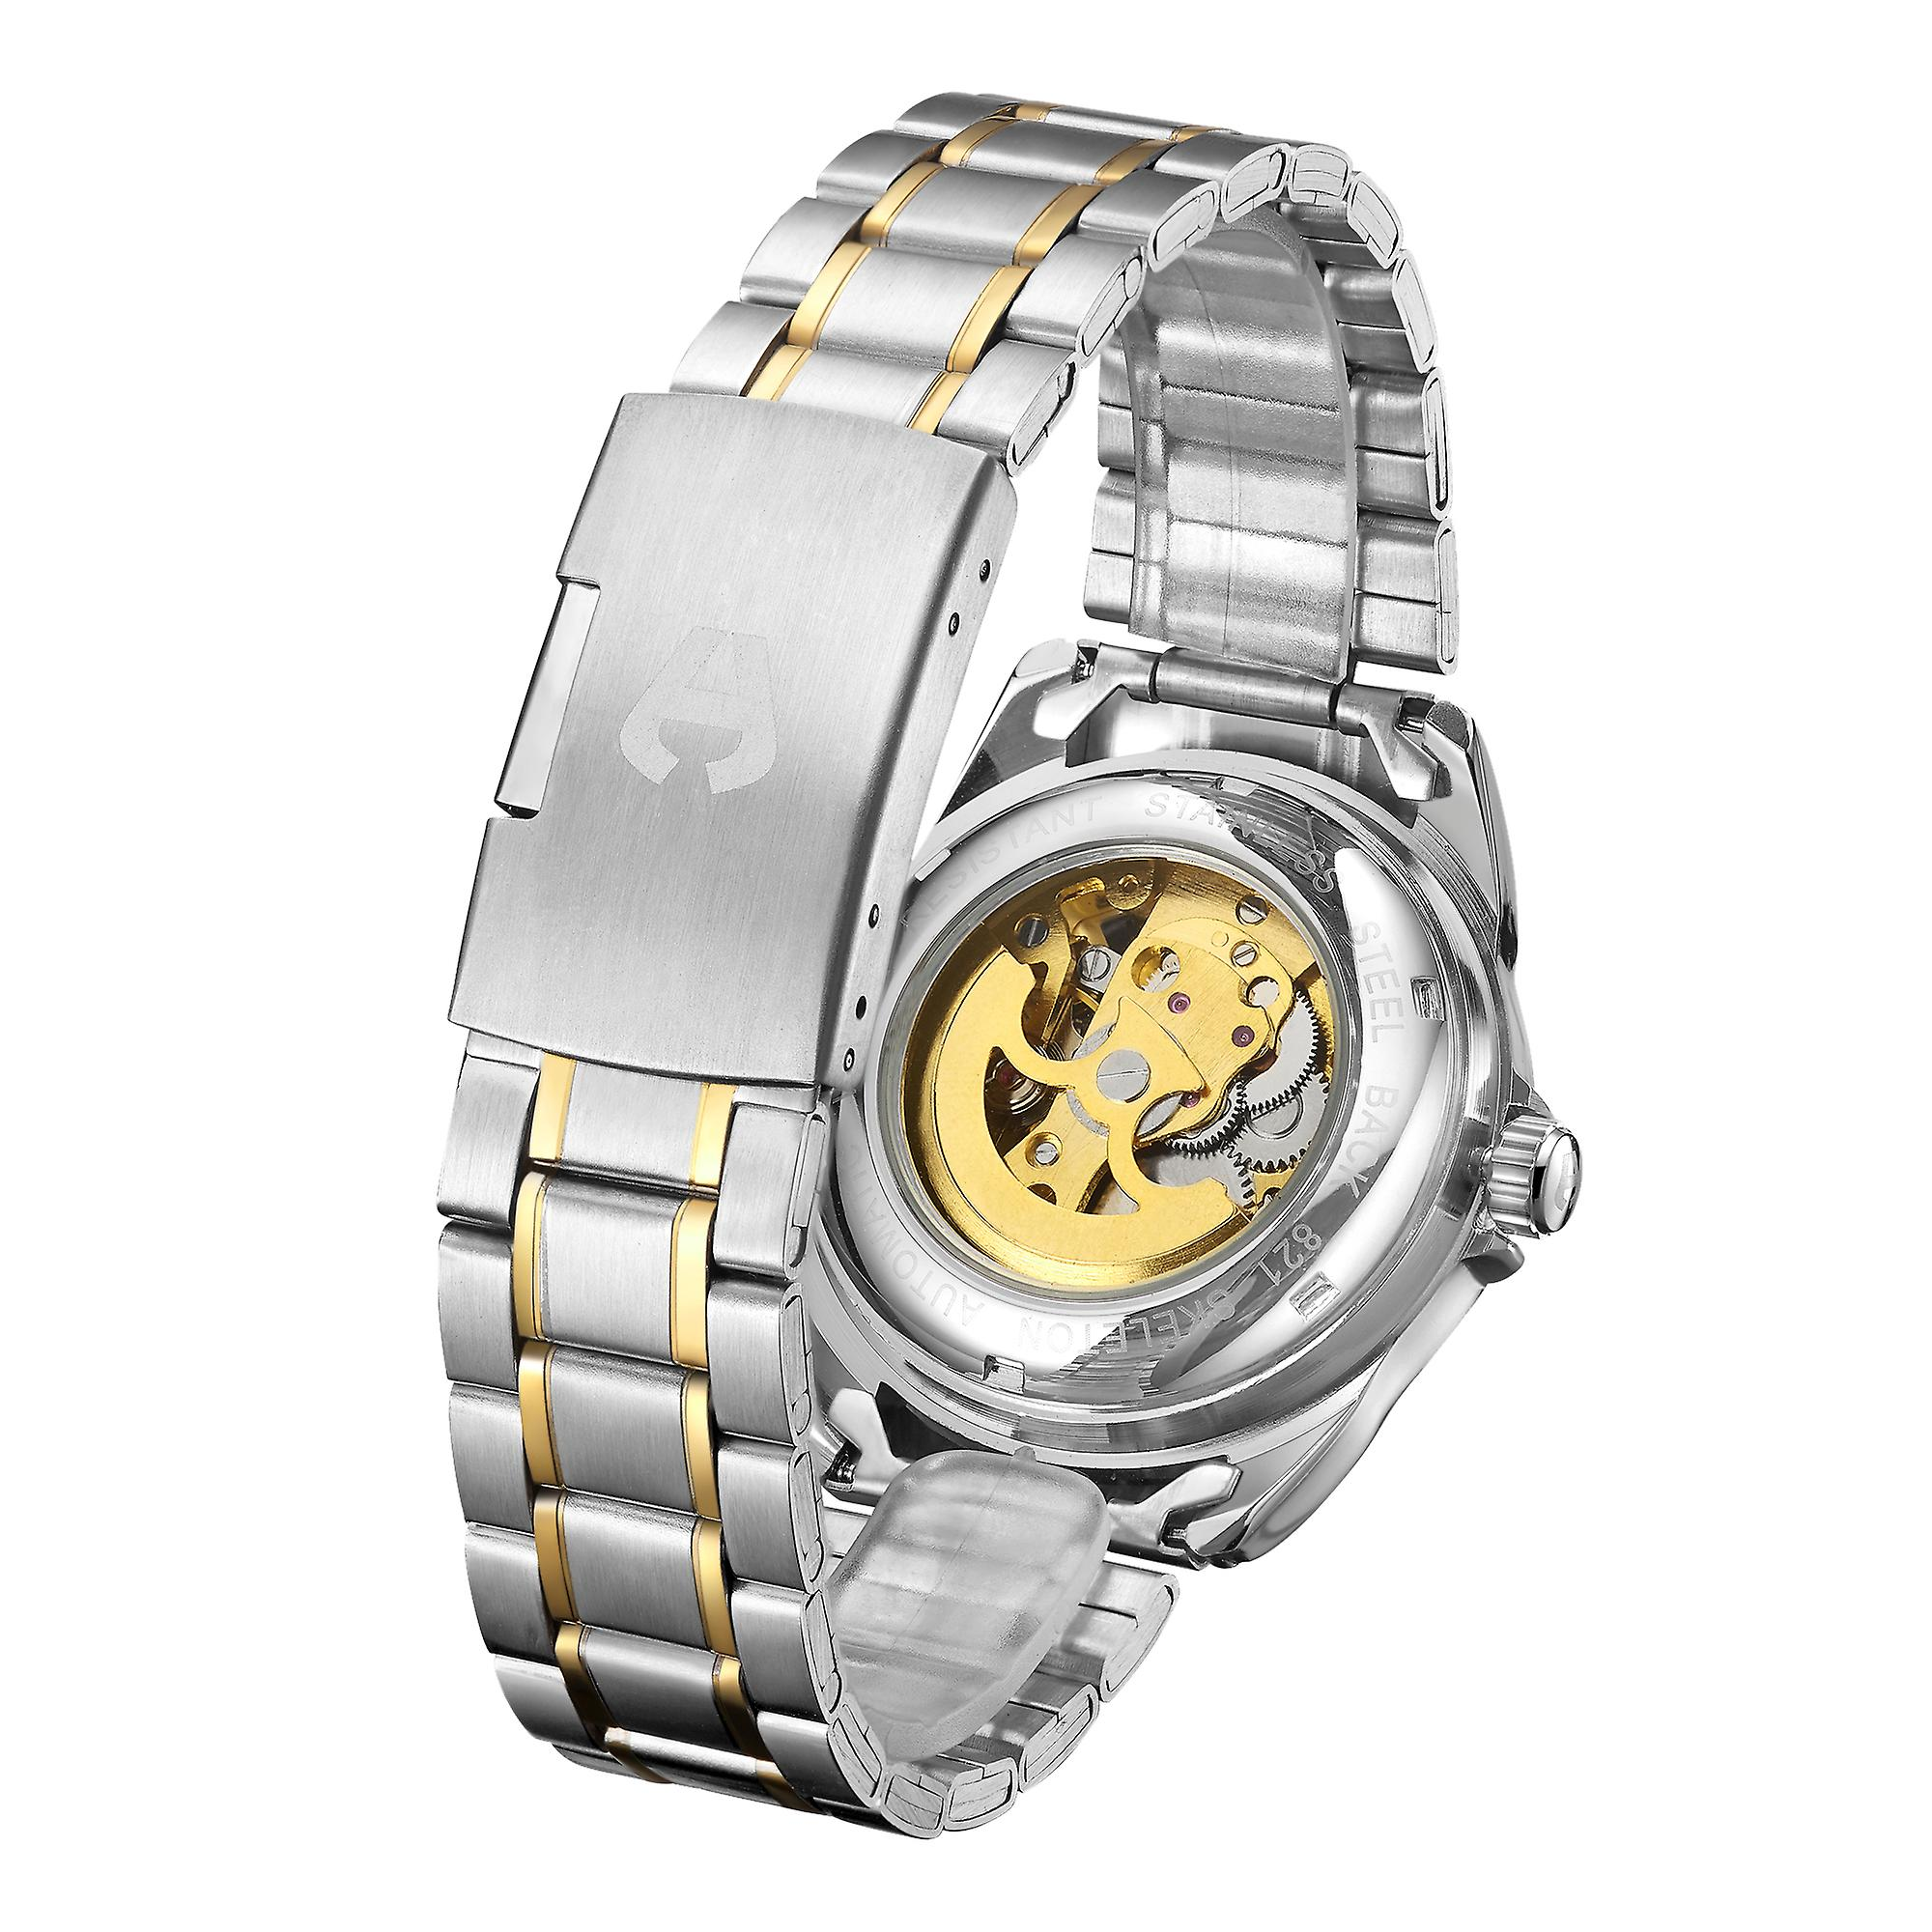 Hand Assembled Anthony James Limited Edition Skeleton Automatic Two Tone Gold & Steel Mens Watch – 5 Year Warranty